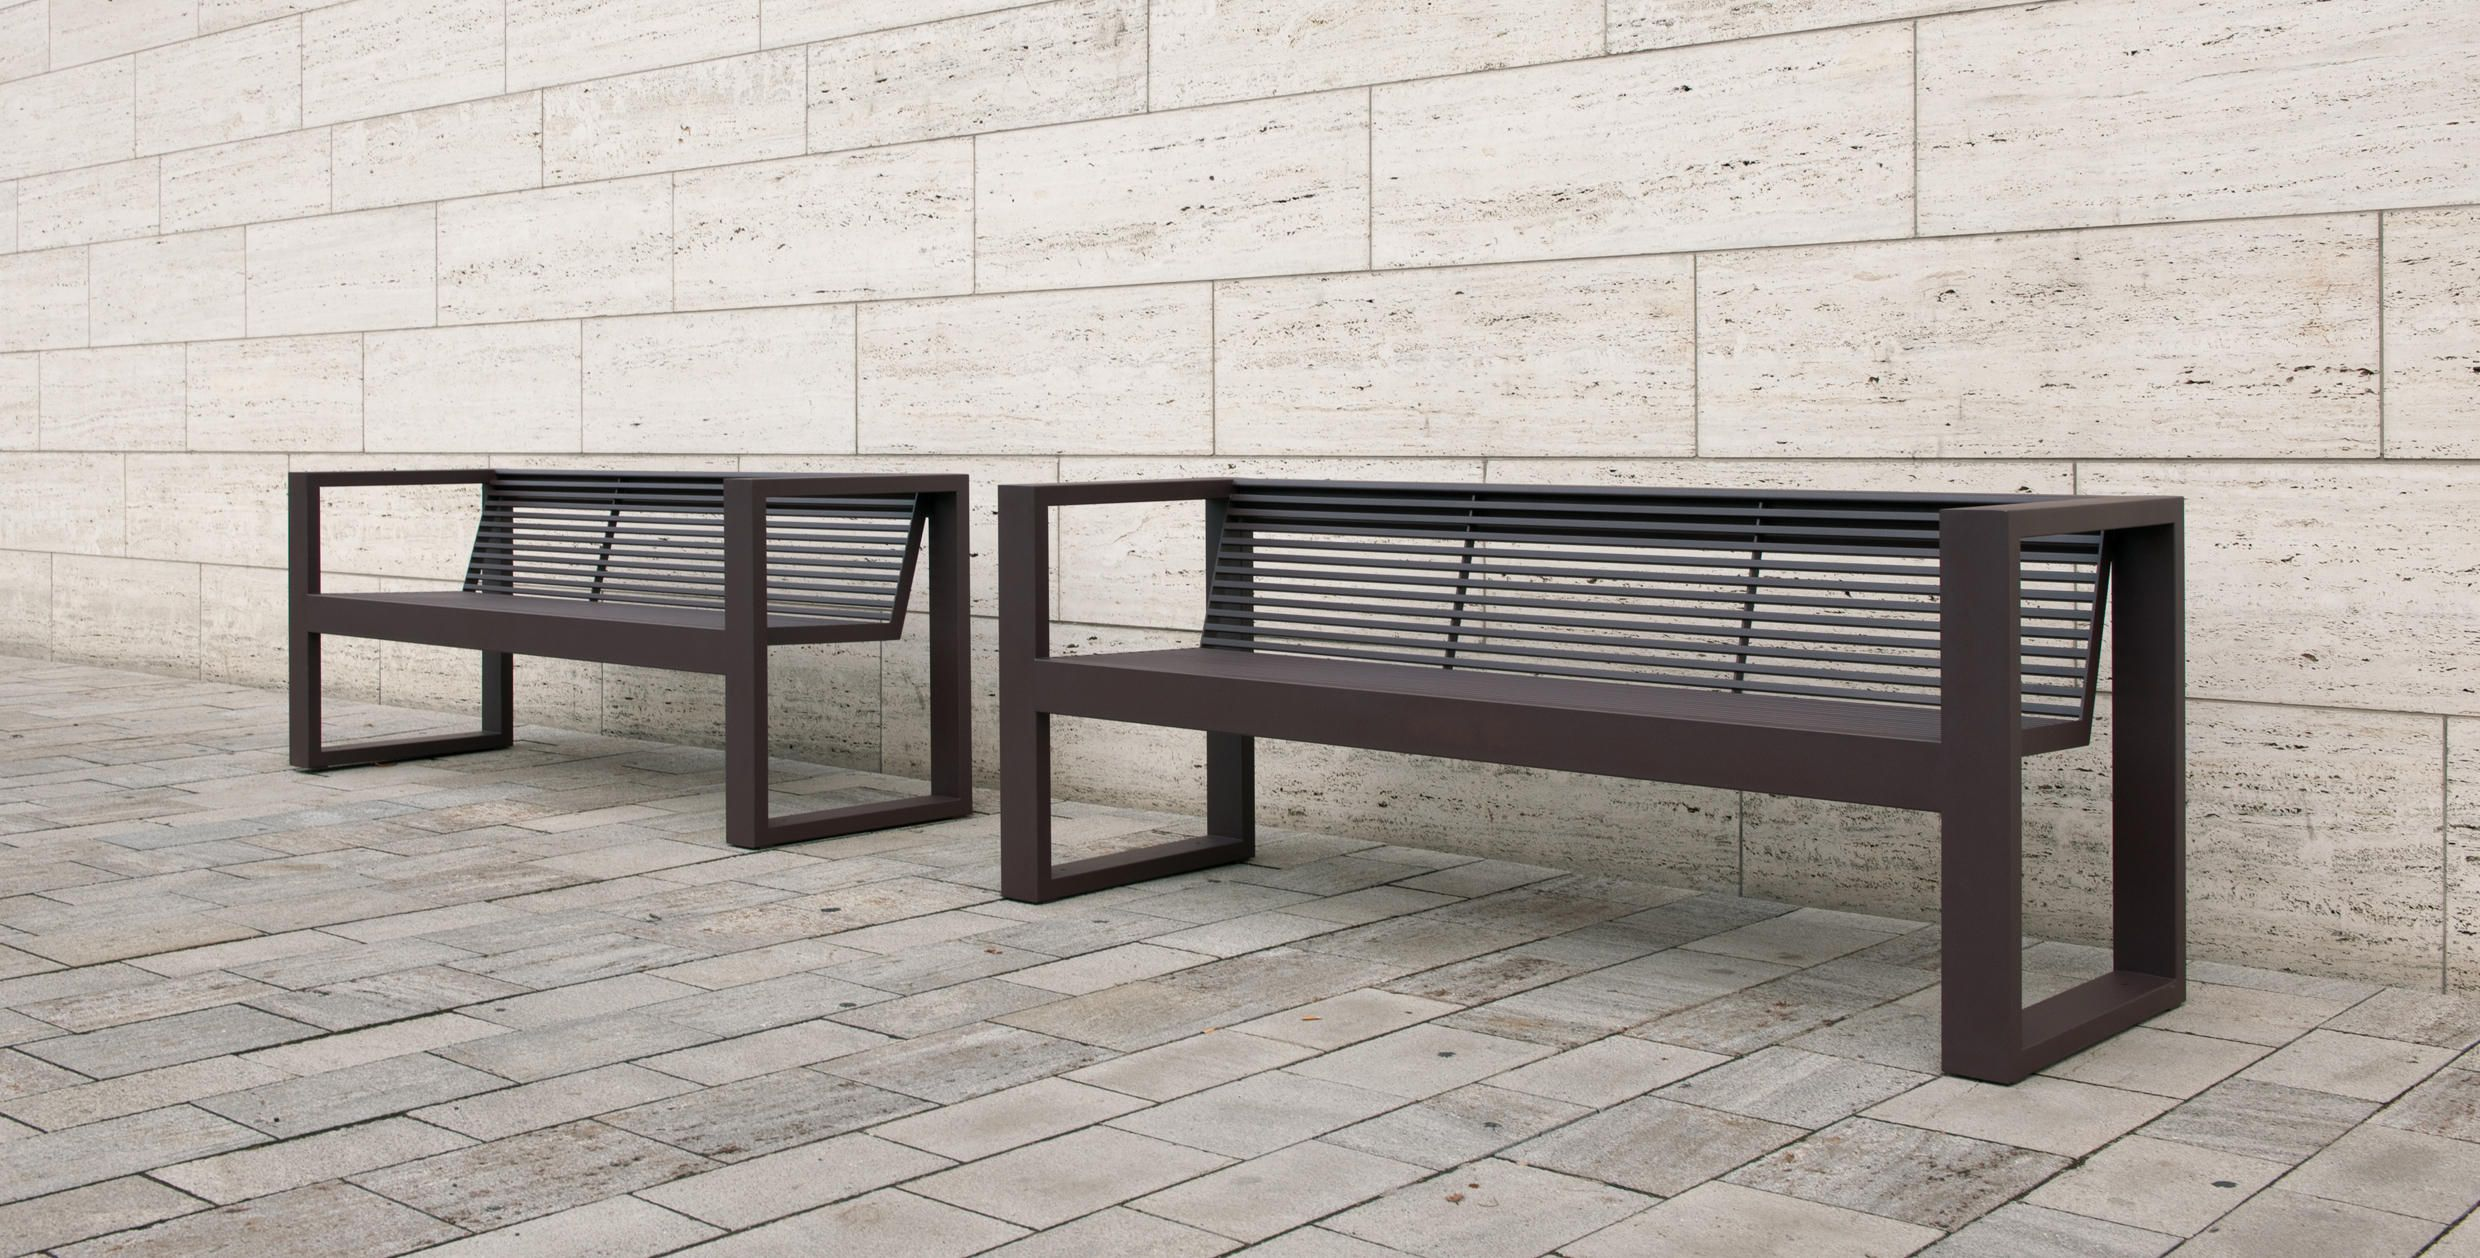 Sicorum M 300 Bench with armrests by BENKERT-BAENKE | Garden ...